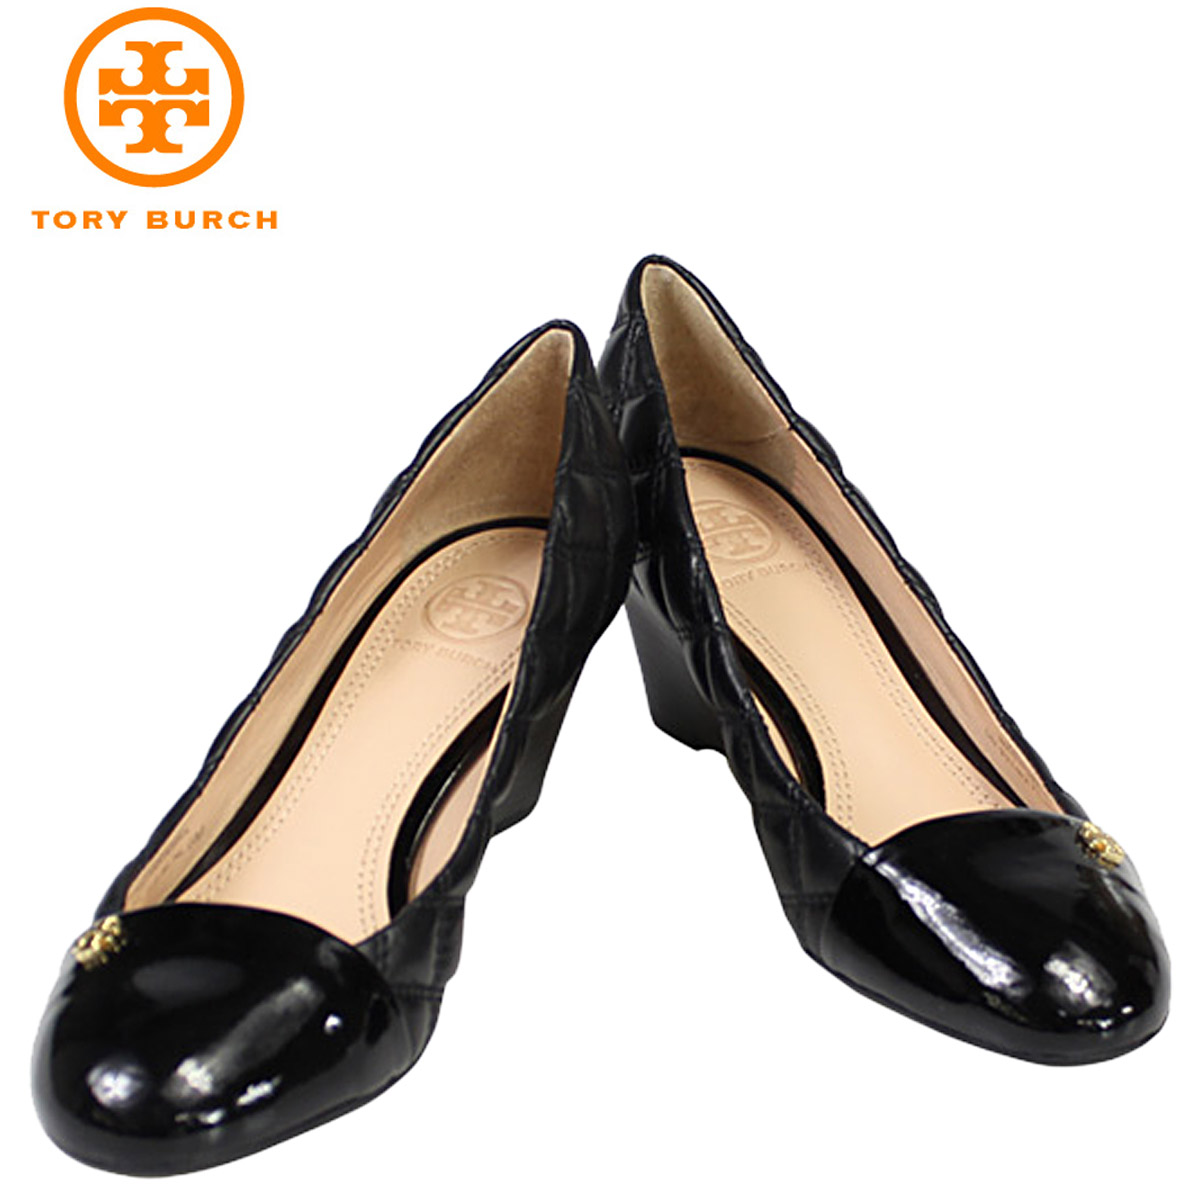 84563551b Tory Burch s luxury brands at affordable based on various sensory and  classic American sportswear. Originally developed by price can be worn by  women of all ...